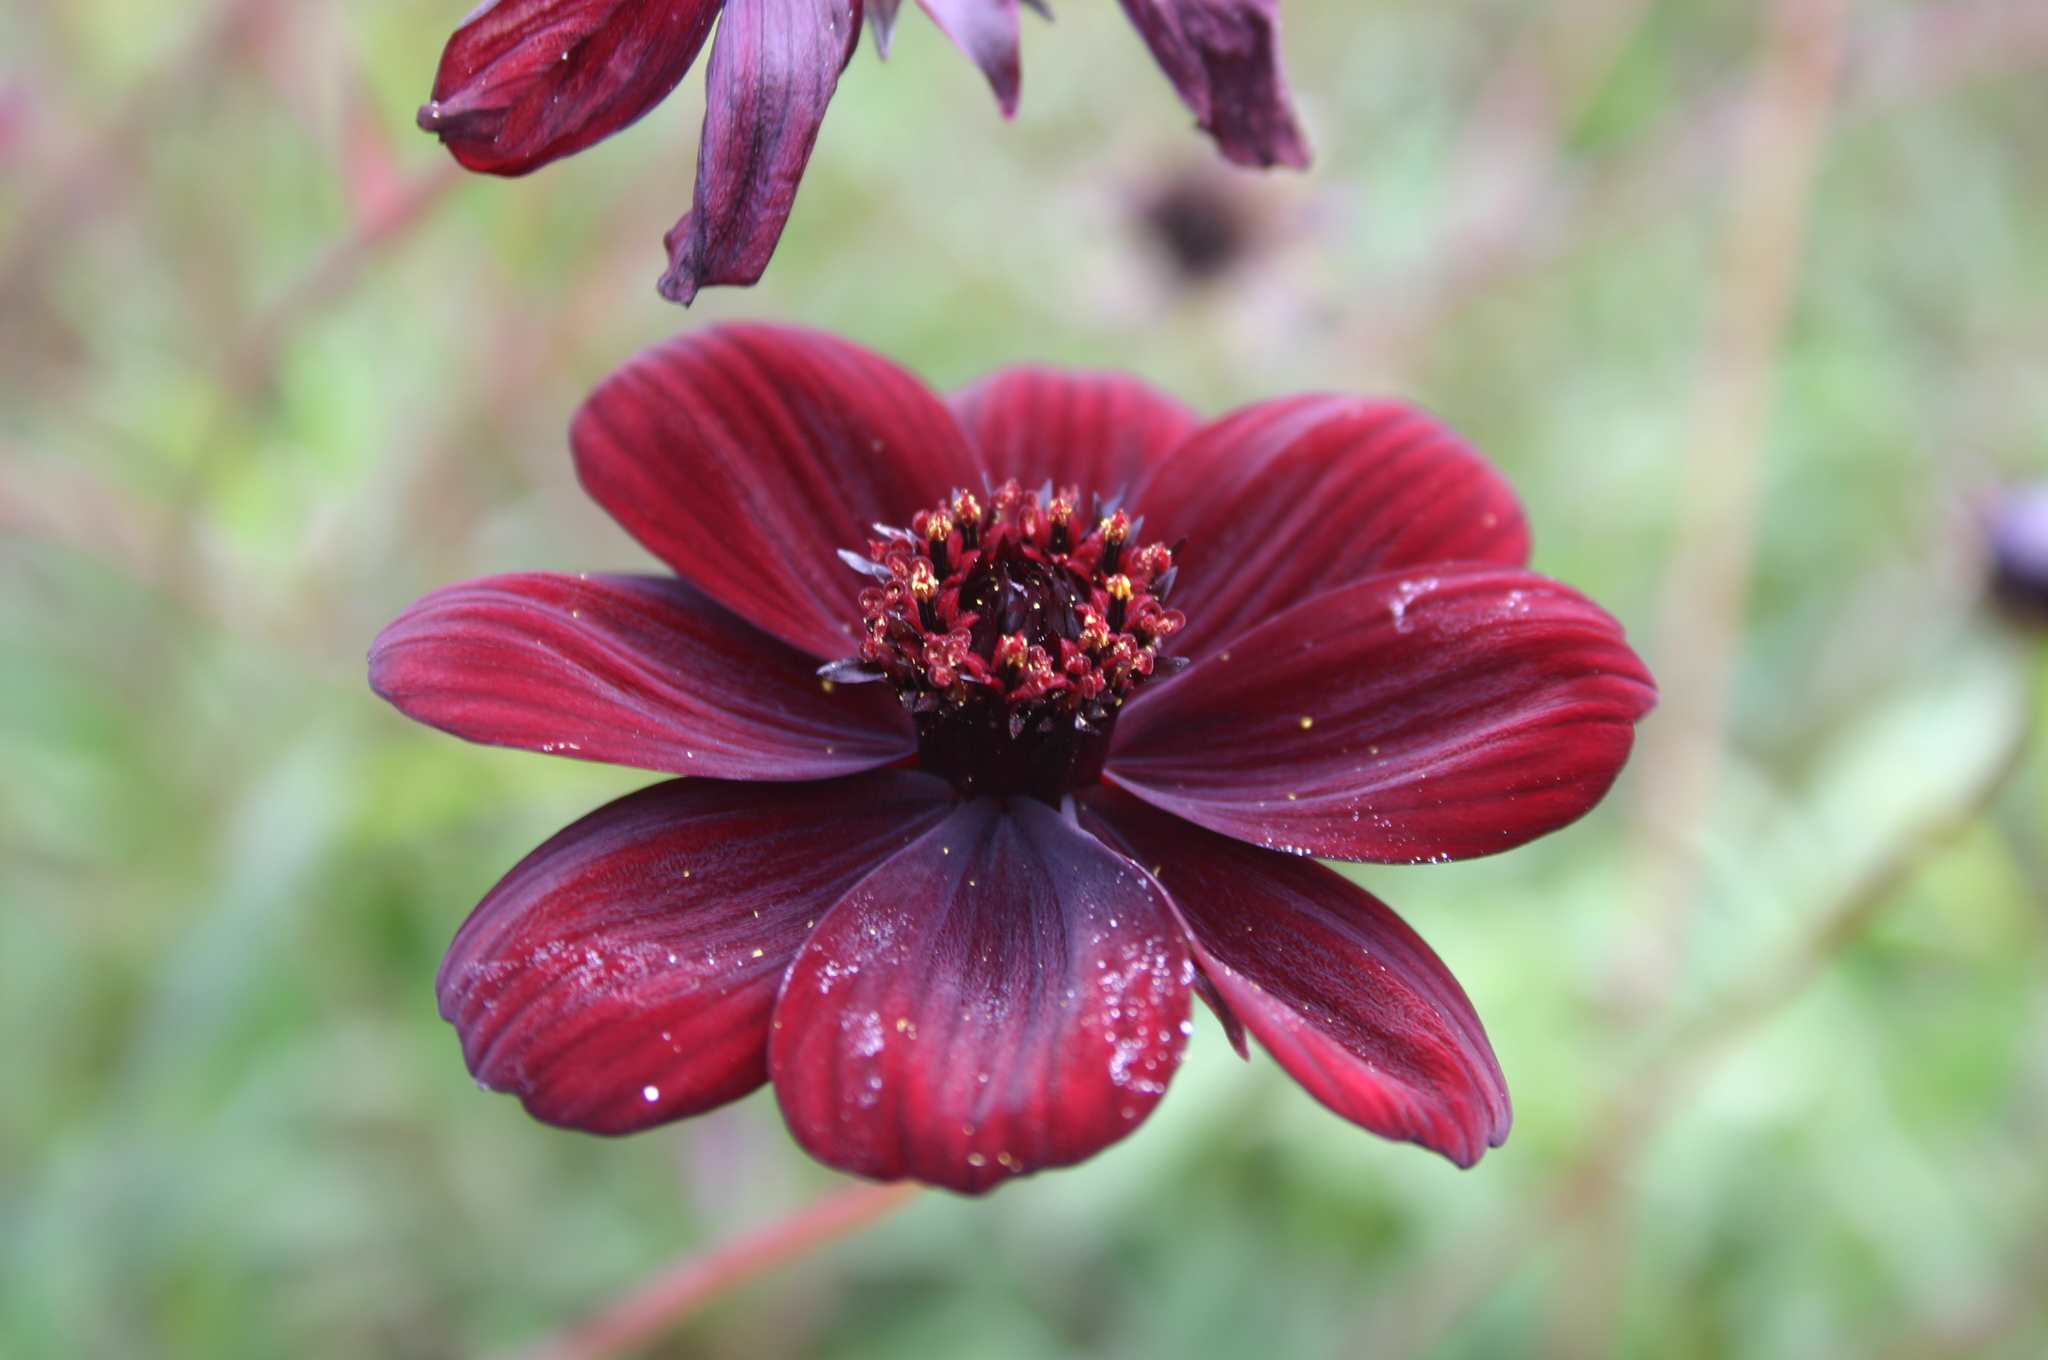 The Fall Bbc Wallpaper Rare And Endangered Flowers Flowers Org Uk